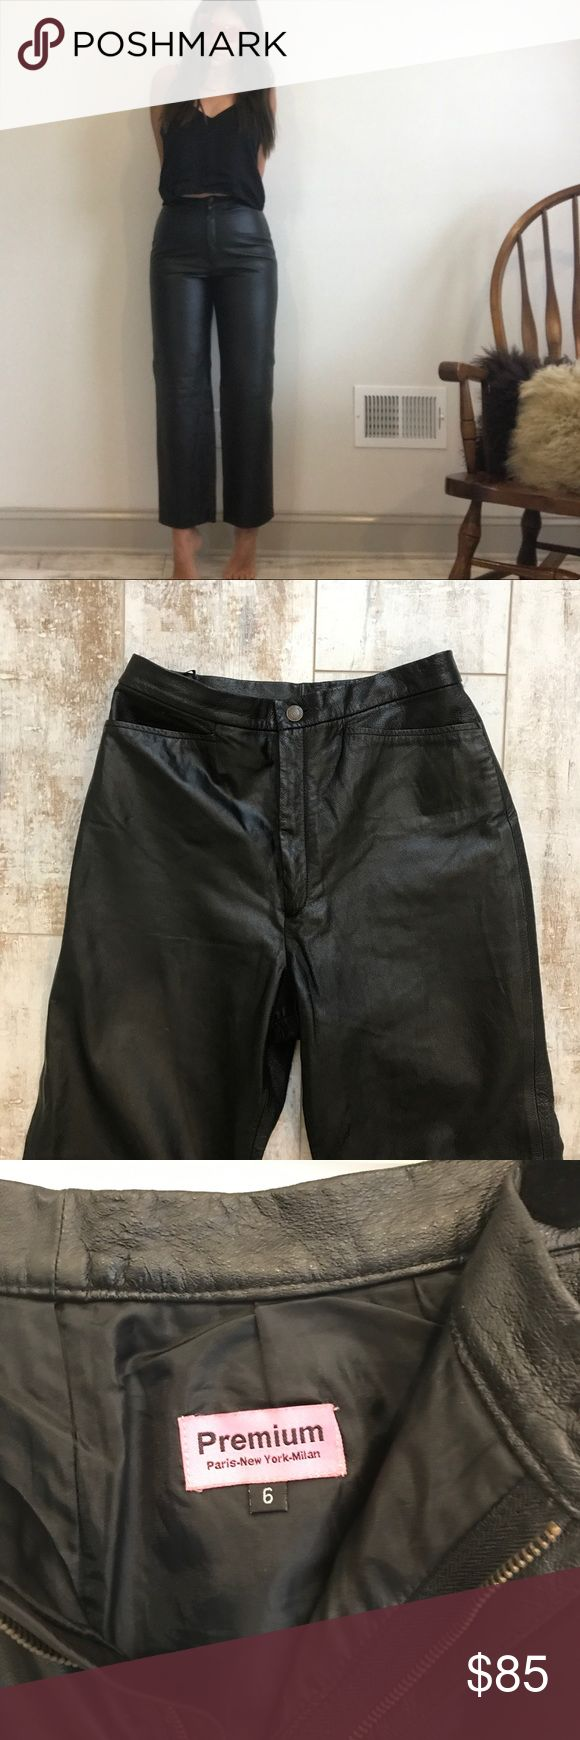 """High waisted VTG leather trousers - AMAZING! Amazing truly high waisted leather trousers. 100% genuine leather. Lined until shins. Two front functioning pockets, zip front closure. There are a few faint scratches to surface of leather, but hardly noticeable.  Rise: 12.5"""" Waist: 28"""" (Flat & doubled) Hips : 40"""" (Flat & doubled) Inseam: 30"""" VTG Pants Trousers"""